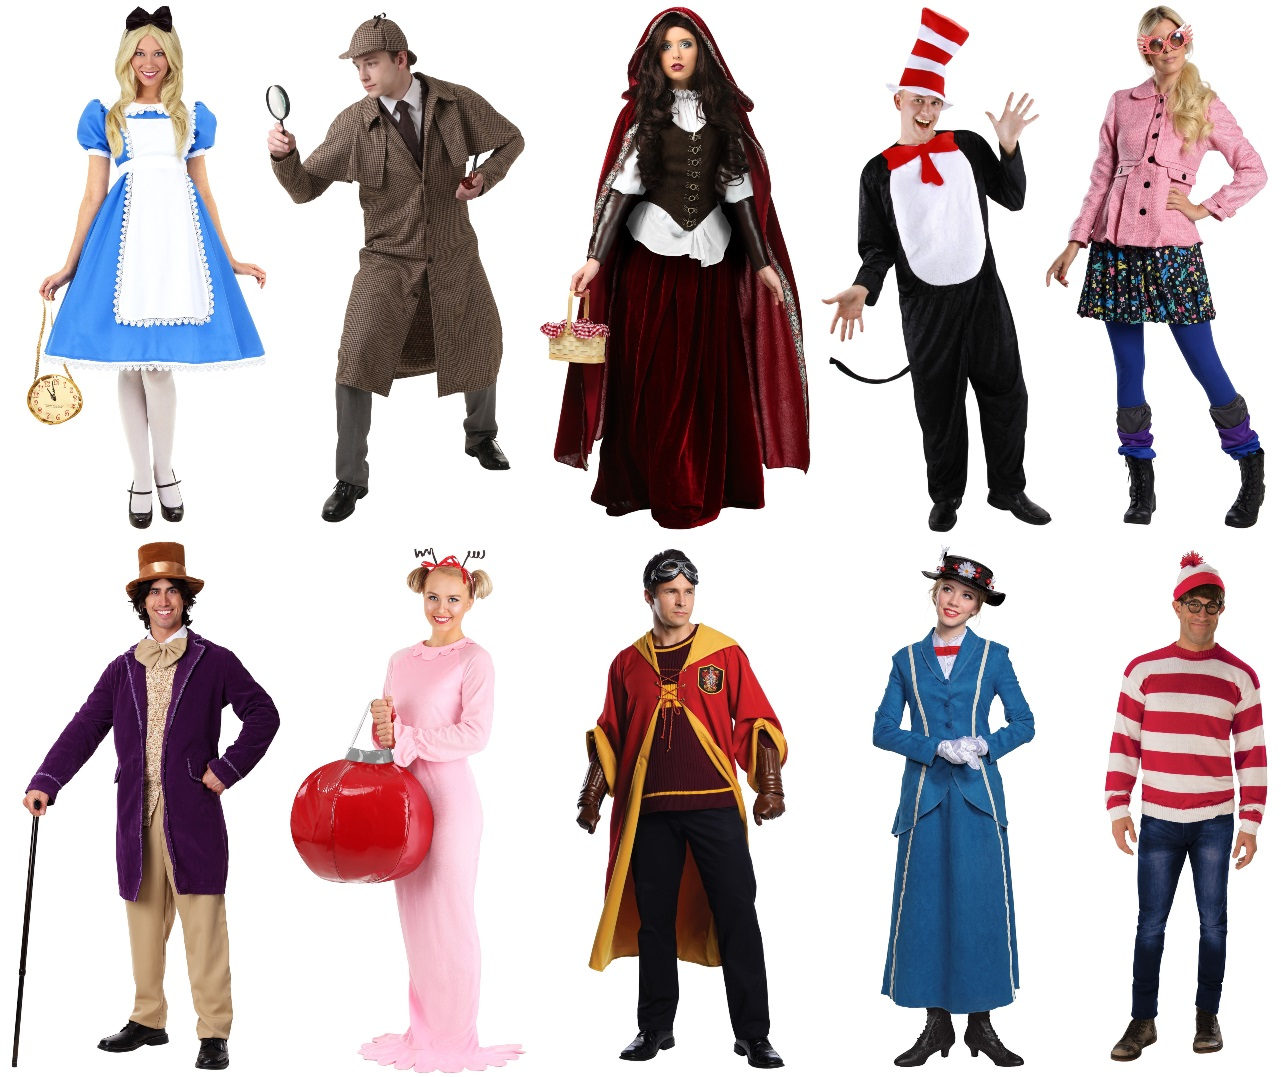 Book Character Costumes for Work